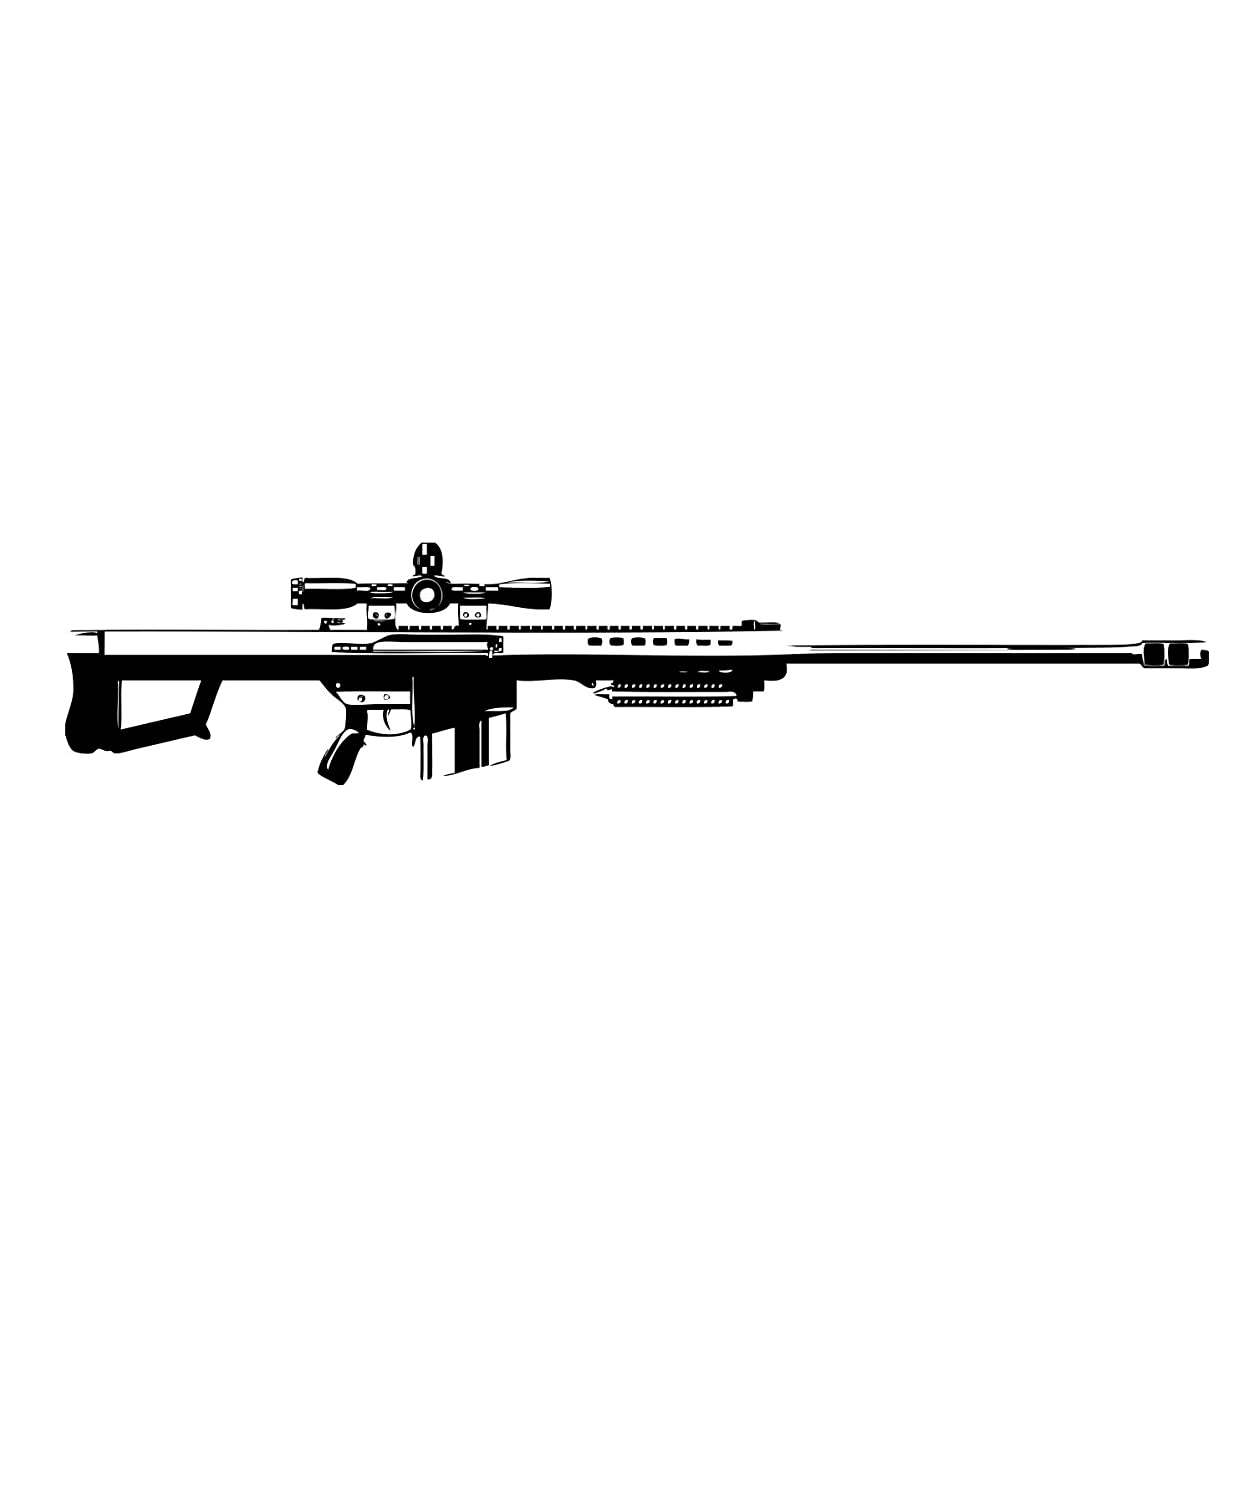 Amazon com stickerbrand 50 cal caliper sniper rifle gun wall decal 15in x 72in black color jh264b home kitchen